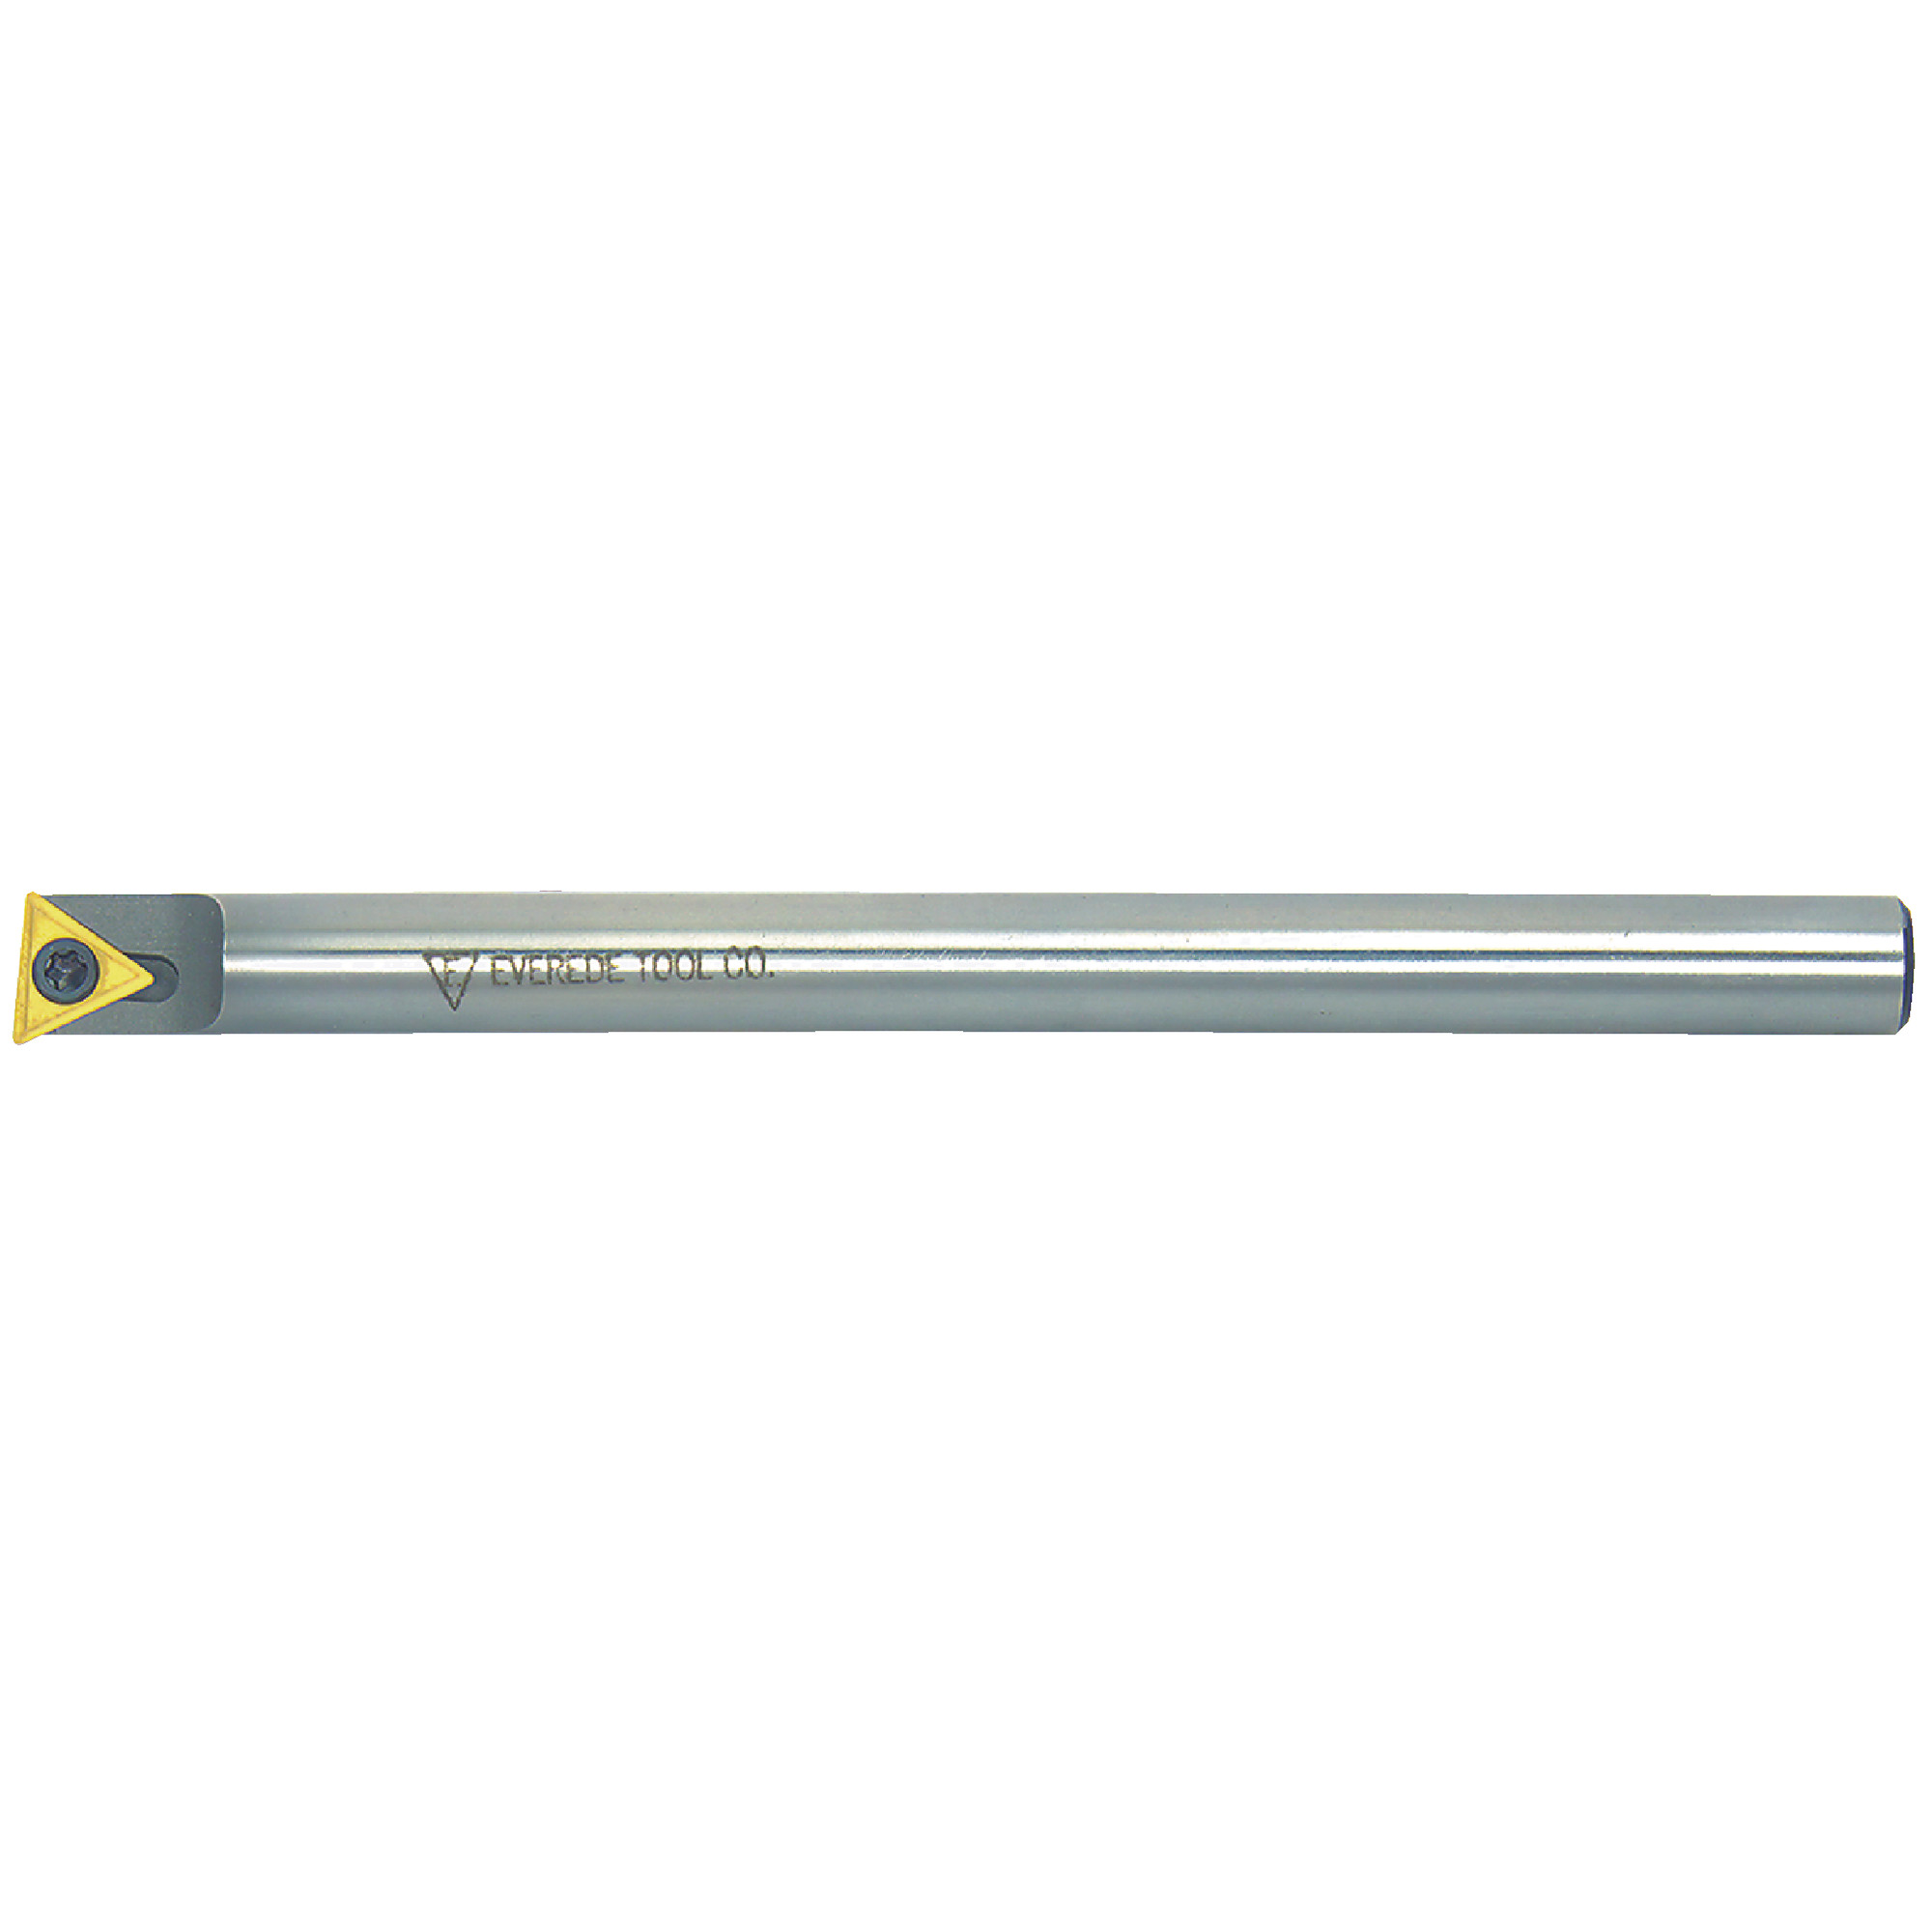 """EVEREDE - SD3500 / Steel Boring Bar / 0.625"""" Shank / TPGH3 / Right Hand"""